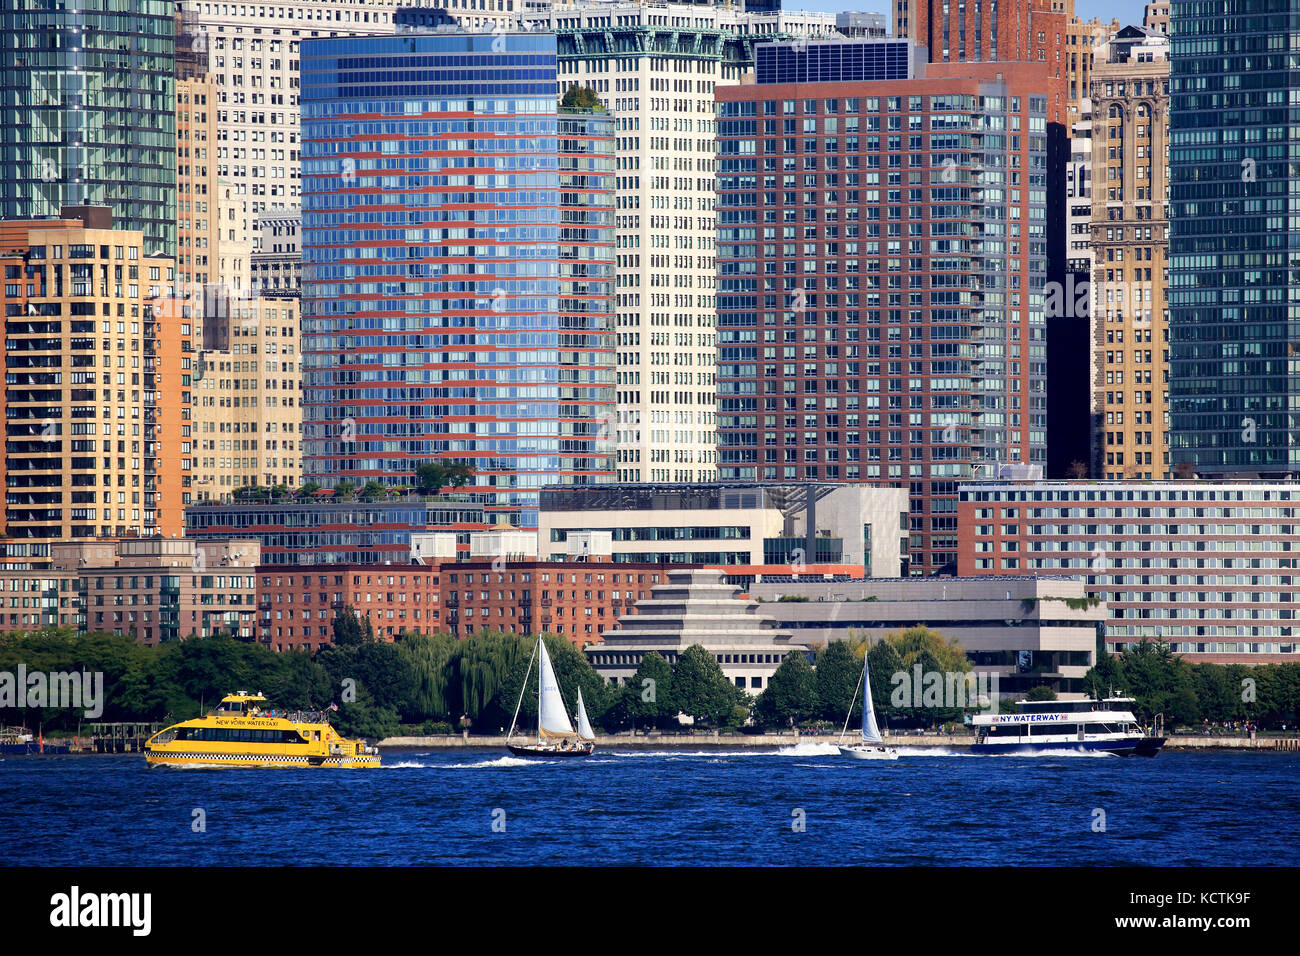 A closed up view of office towers in Lower Manhattan financial district with ferry boats in Hudson River in foreground.New - Stock Image